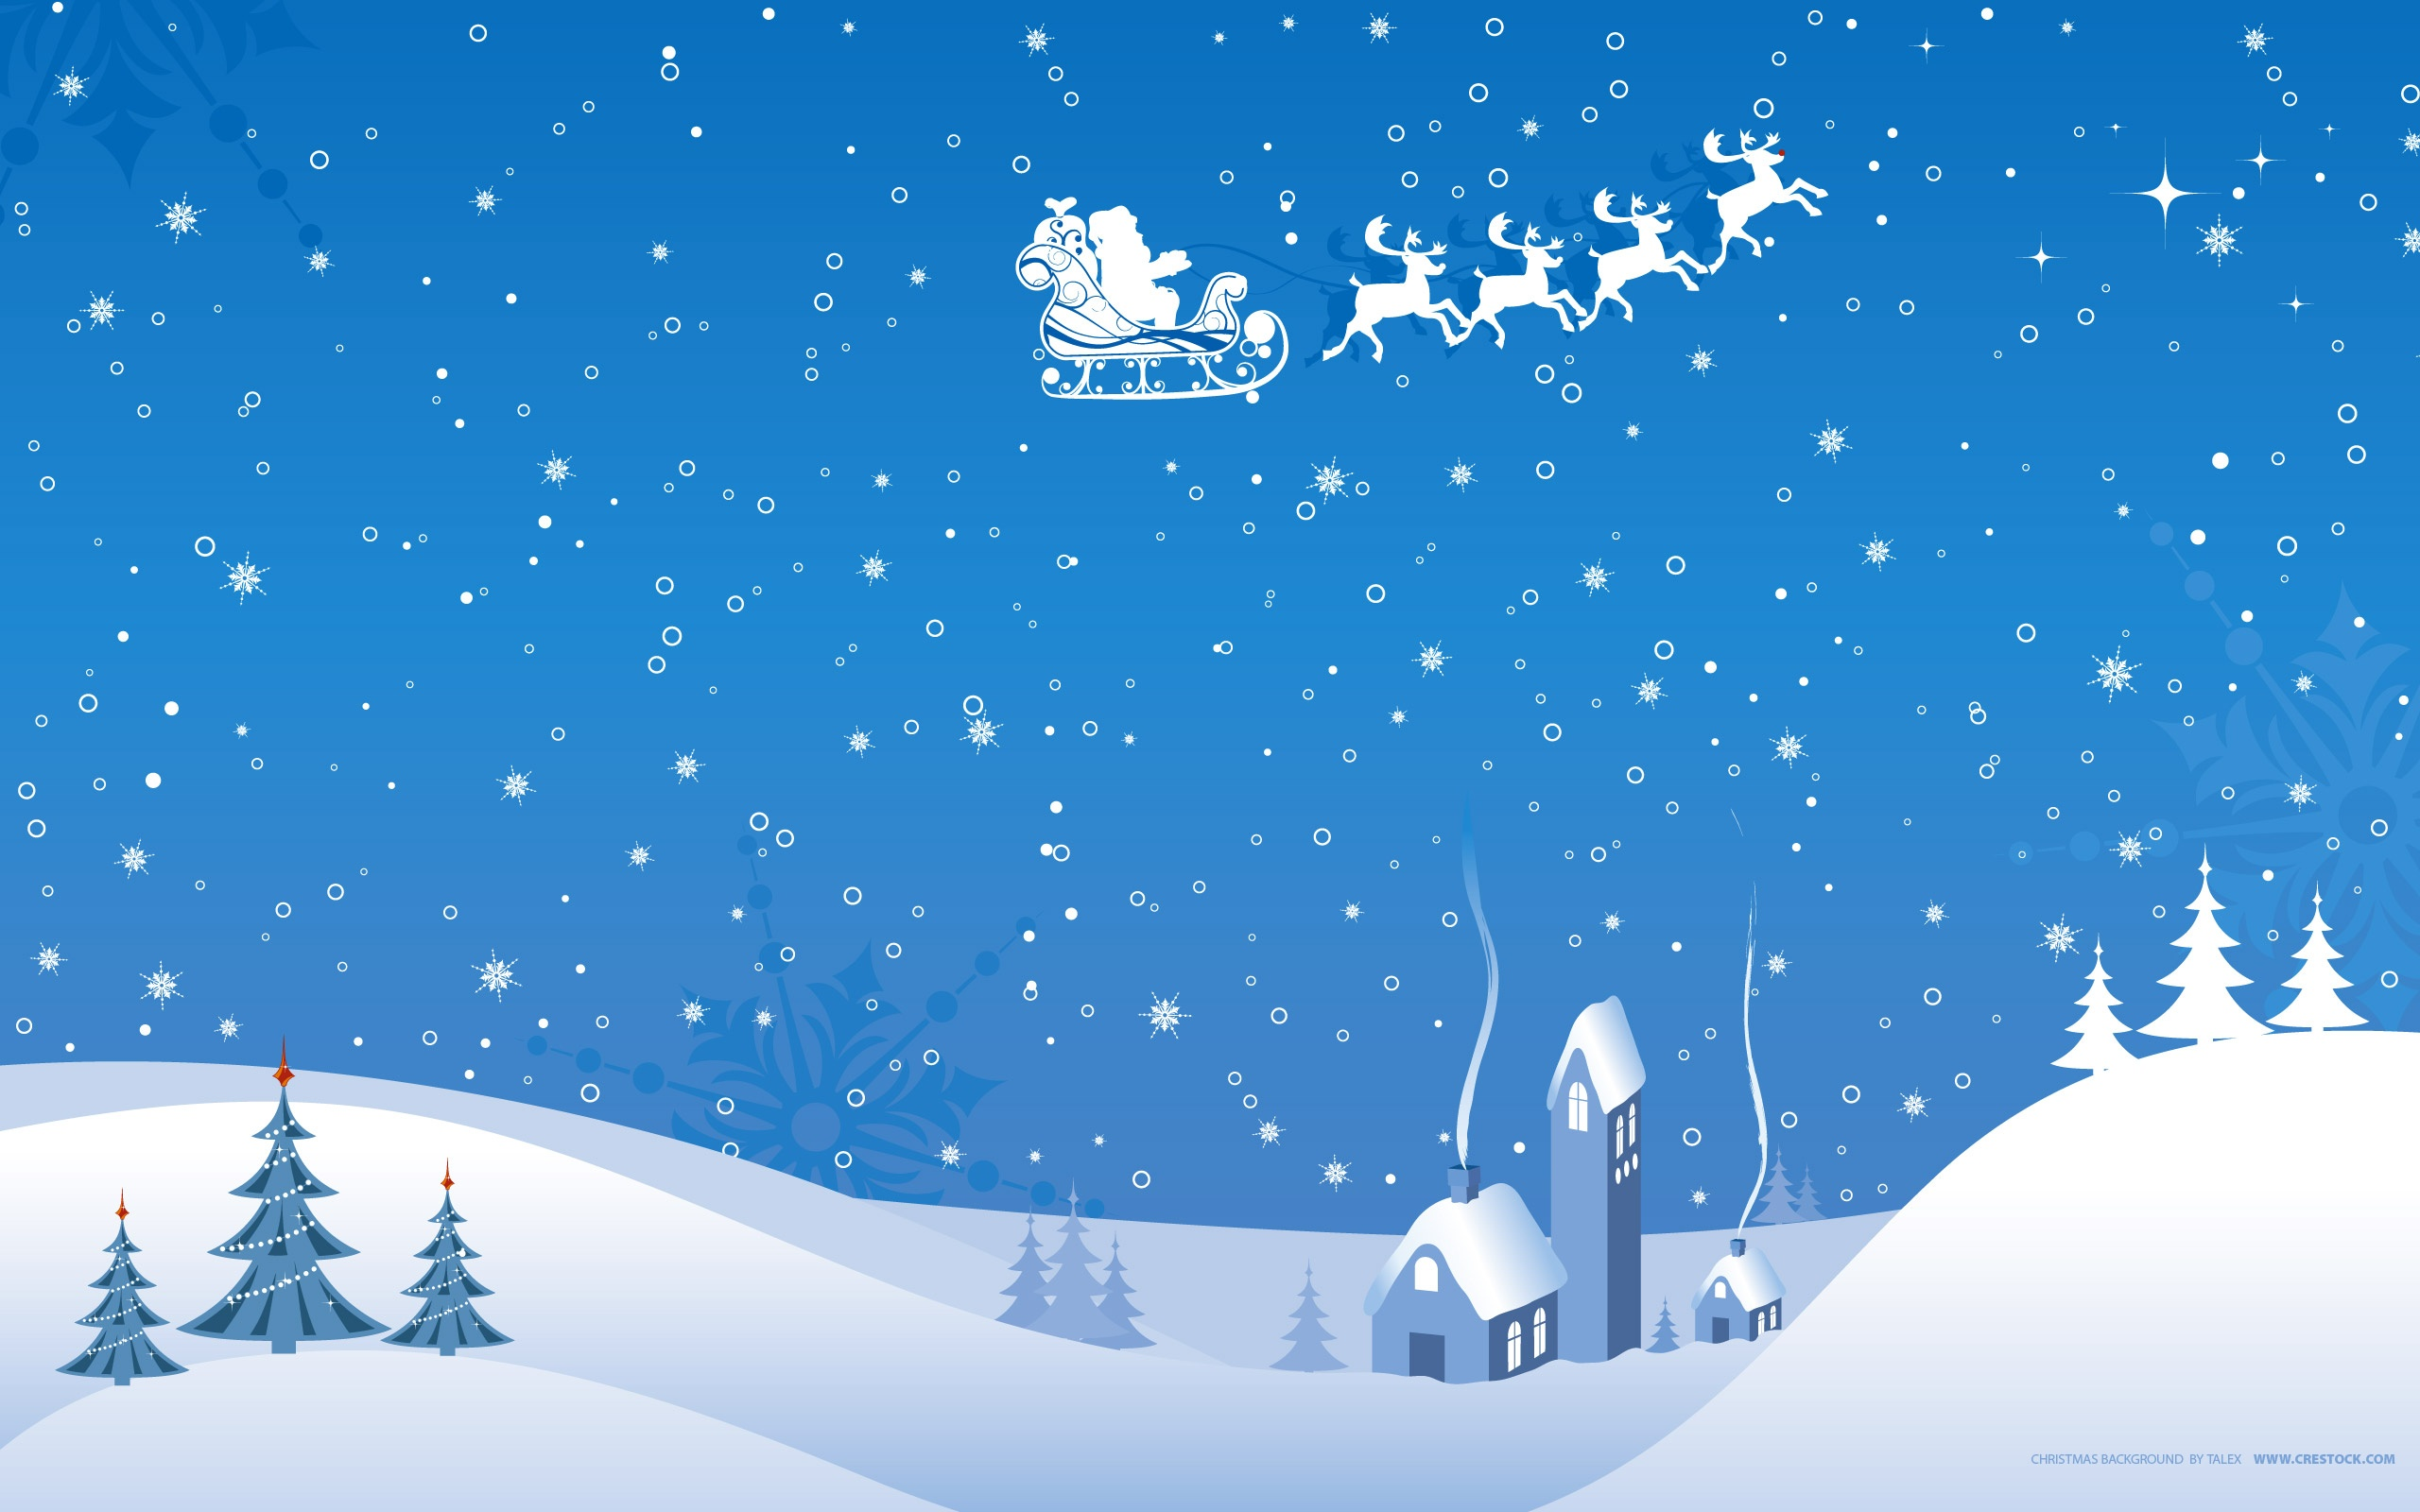 2560x1600 Christmas Winter Vector Wallpapers In Jpg Format For Free Download